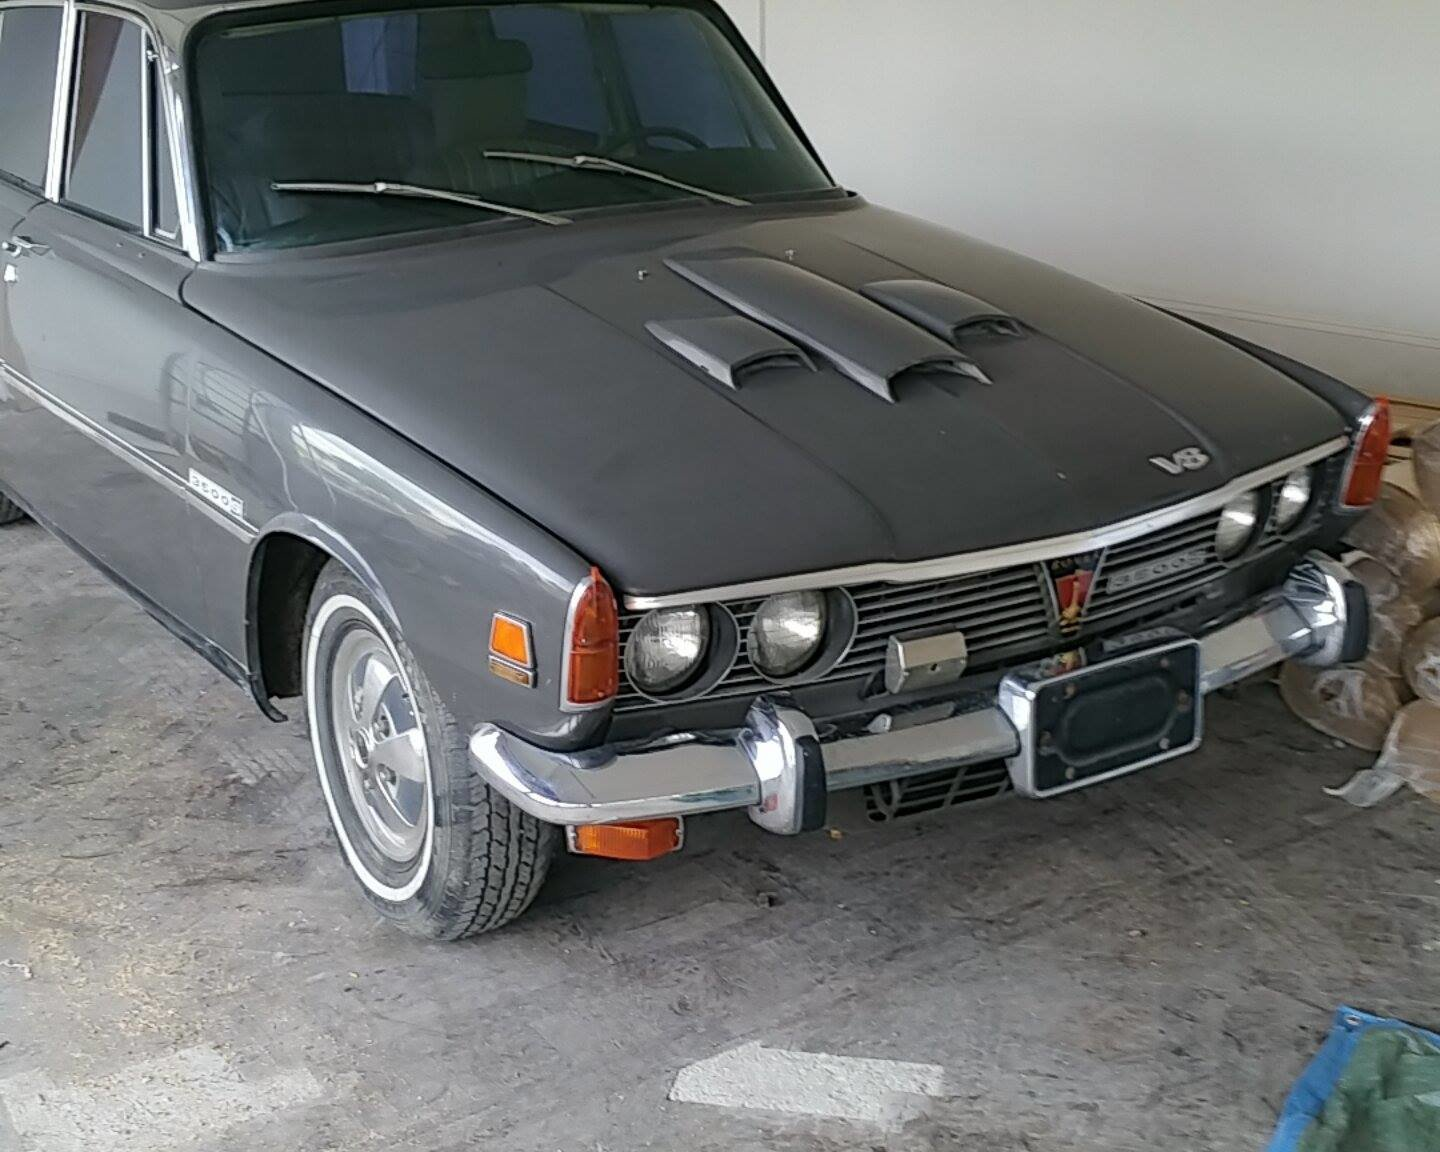 1970 Rover P6 3500S Nada Totally original  For Sale (picture 1 of 5)